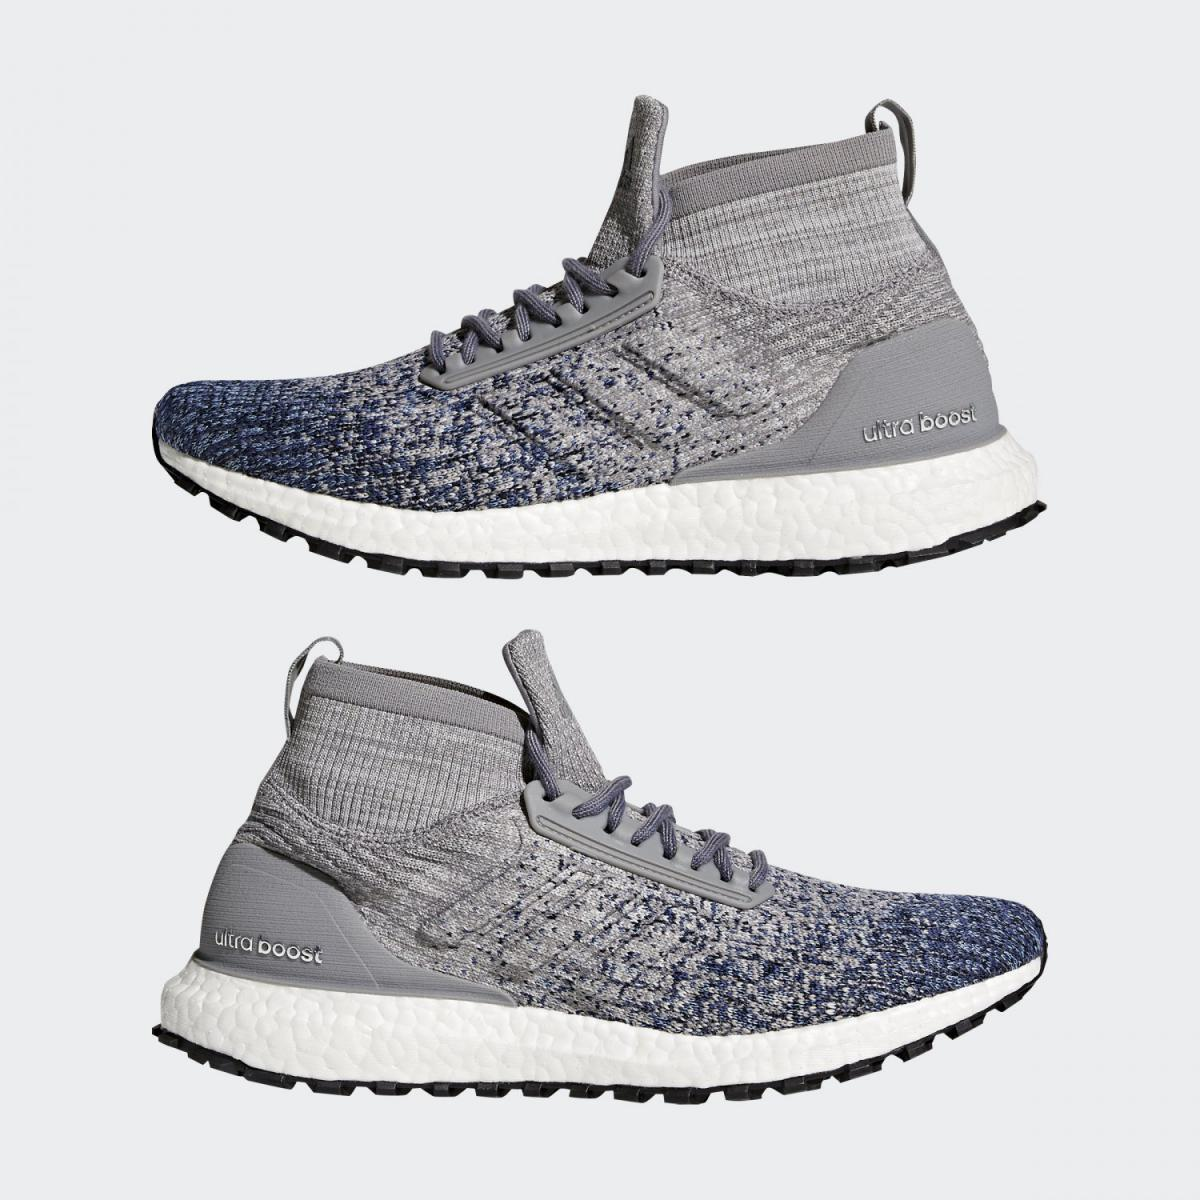 adidas-ultra-boost-all-terrain-bb6128-20171201